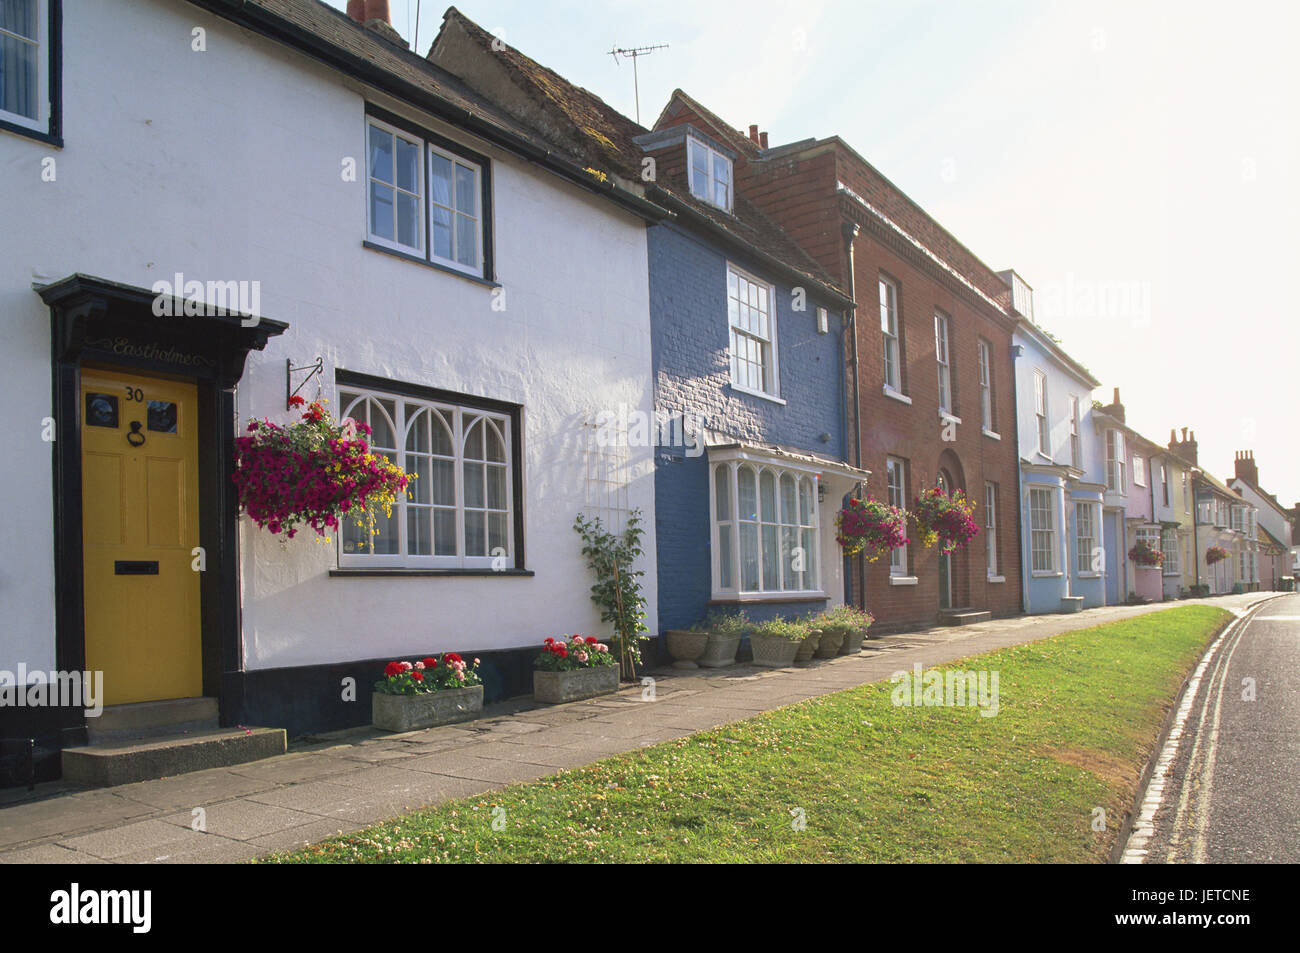 Great Britain, England, Hampshire, Alresford, terrace, back light, Europe, town, houses, buildings, architecture, - Stock Image